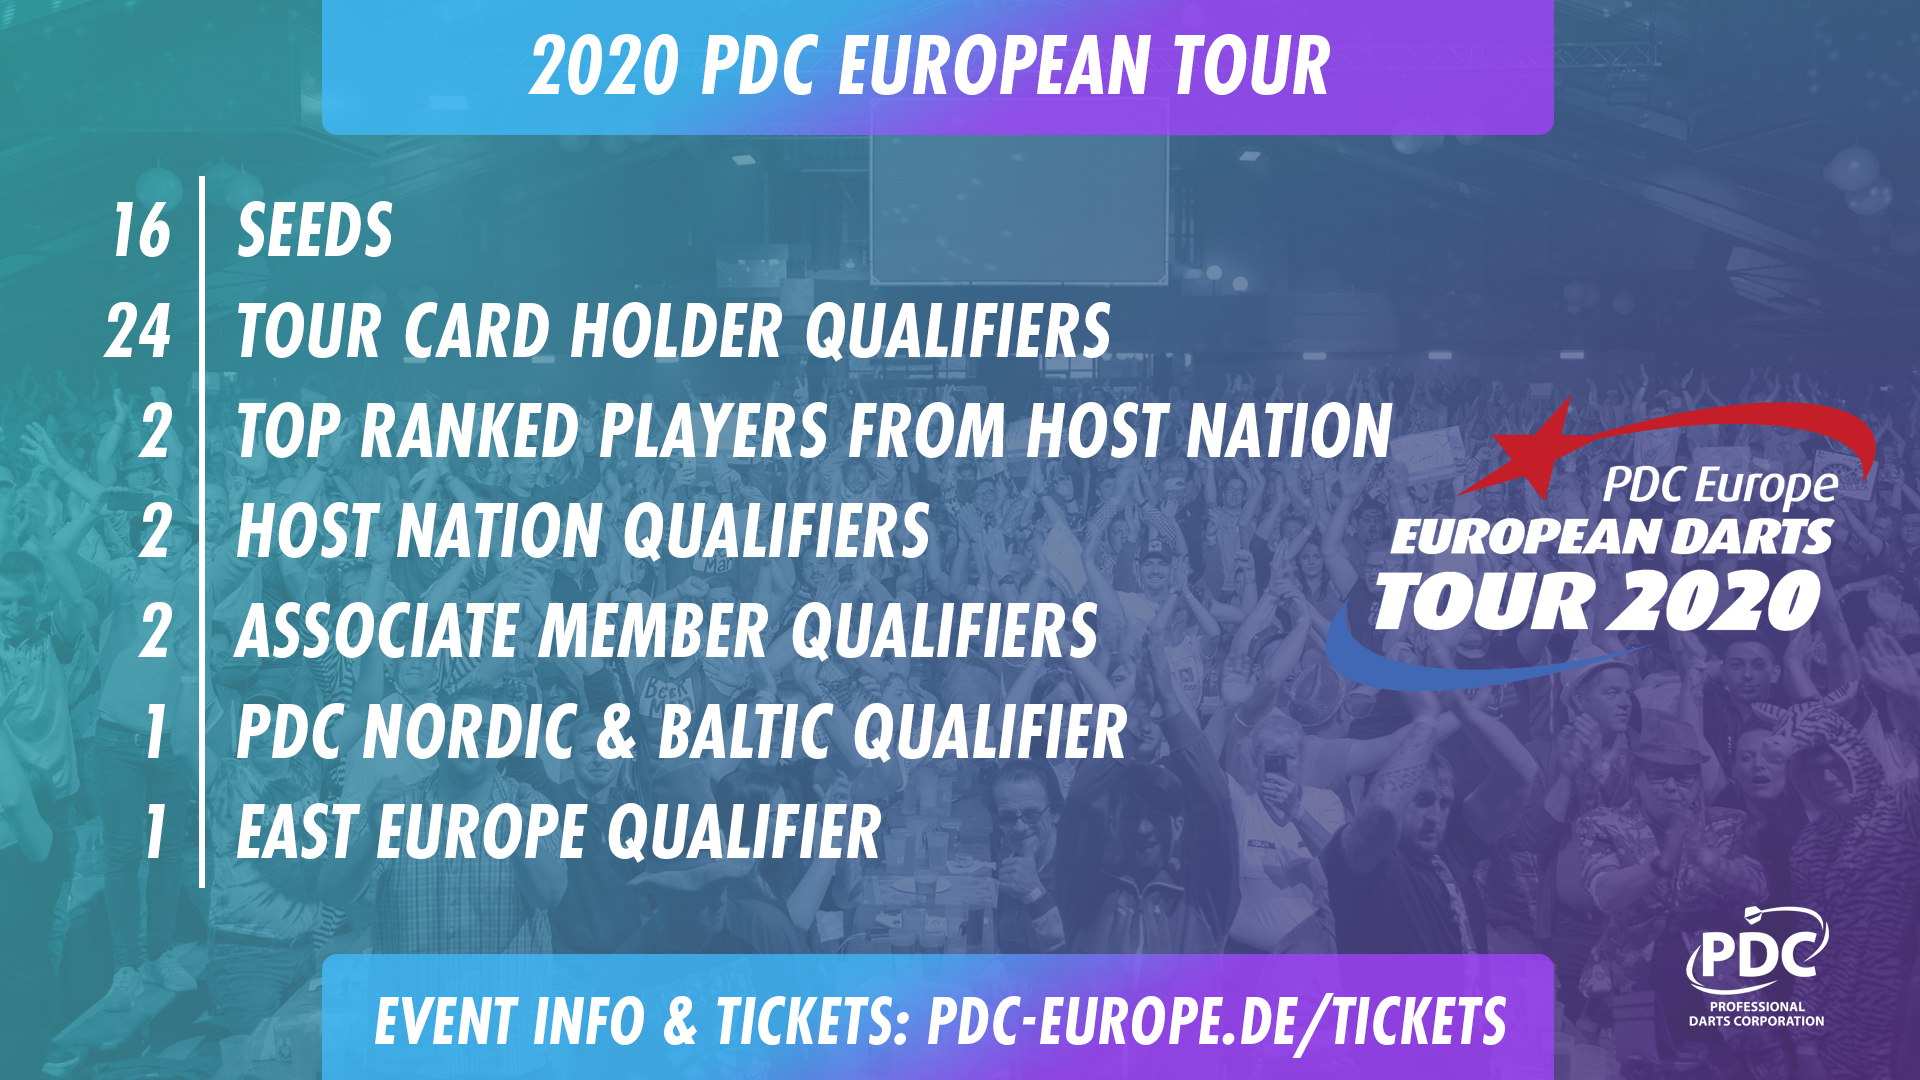 European Tour qualification (PDC)